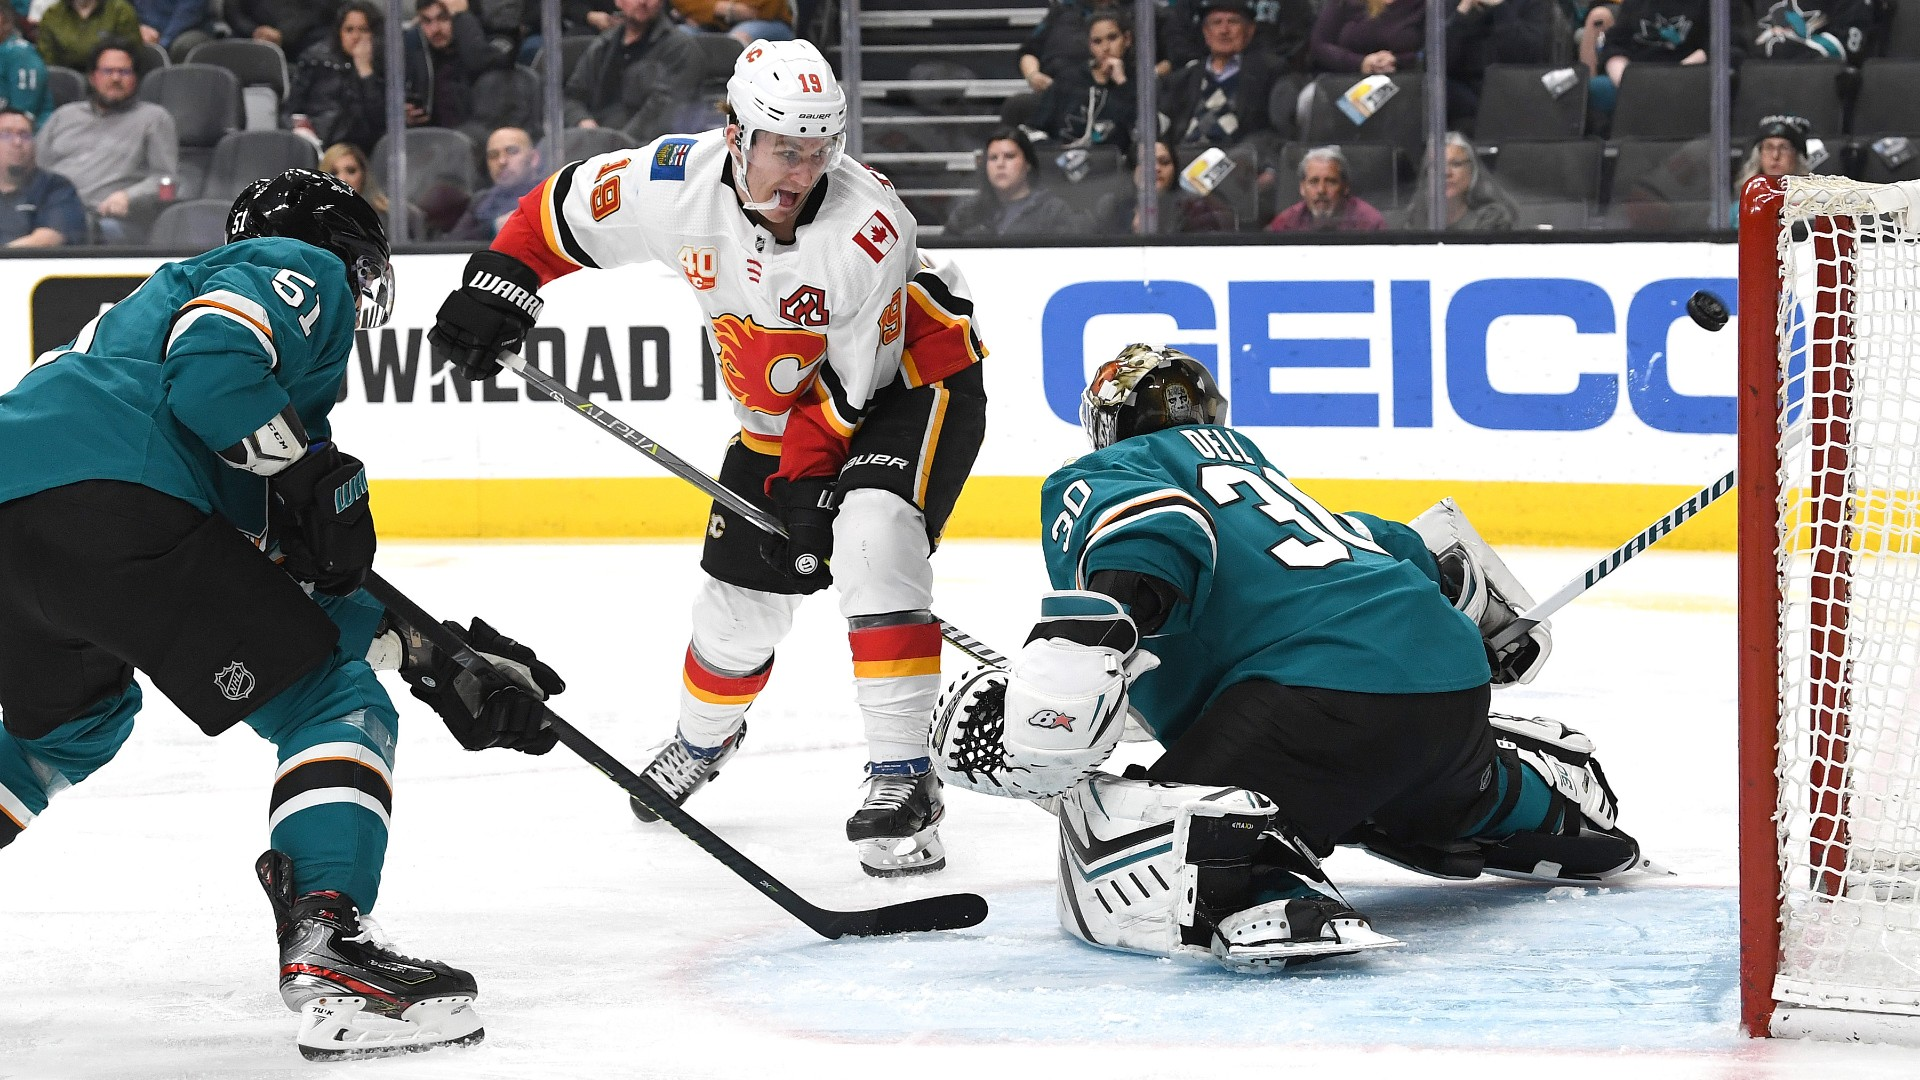 Matthew Tkachuk's latest between-the-legs goal is a reminder of Flames winger's undeniable stardom